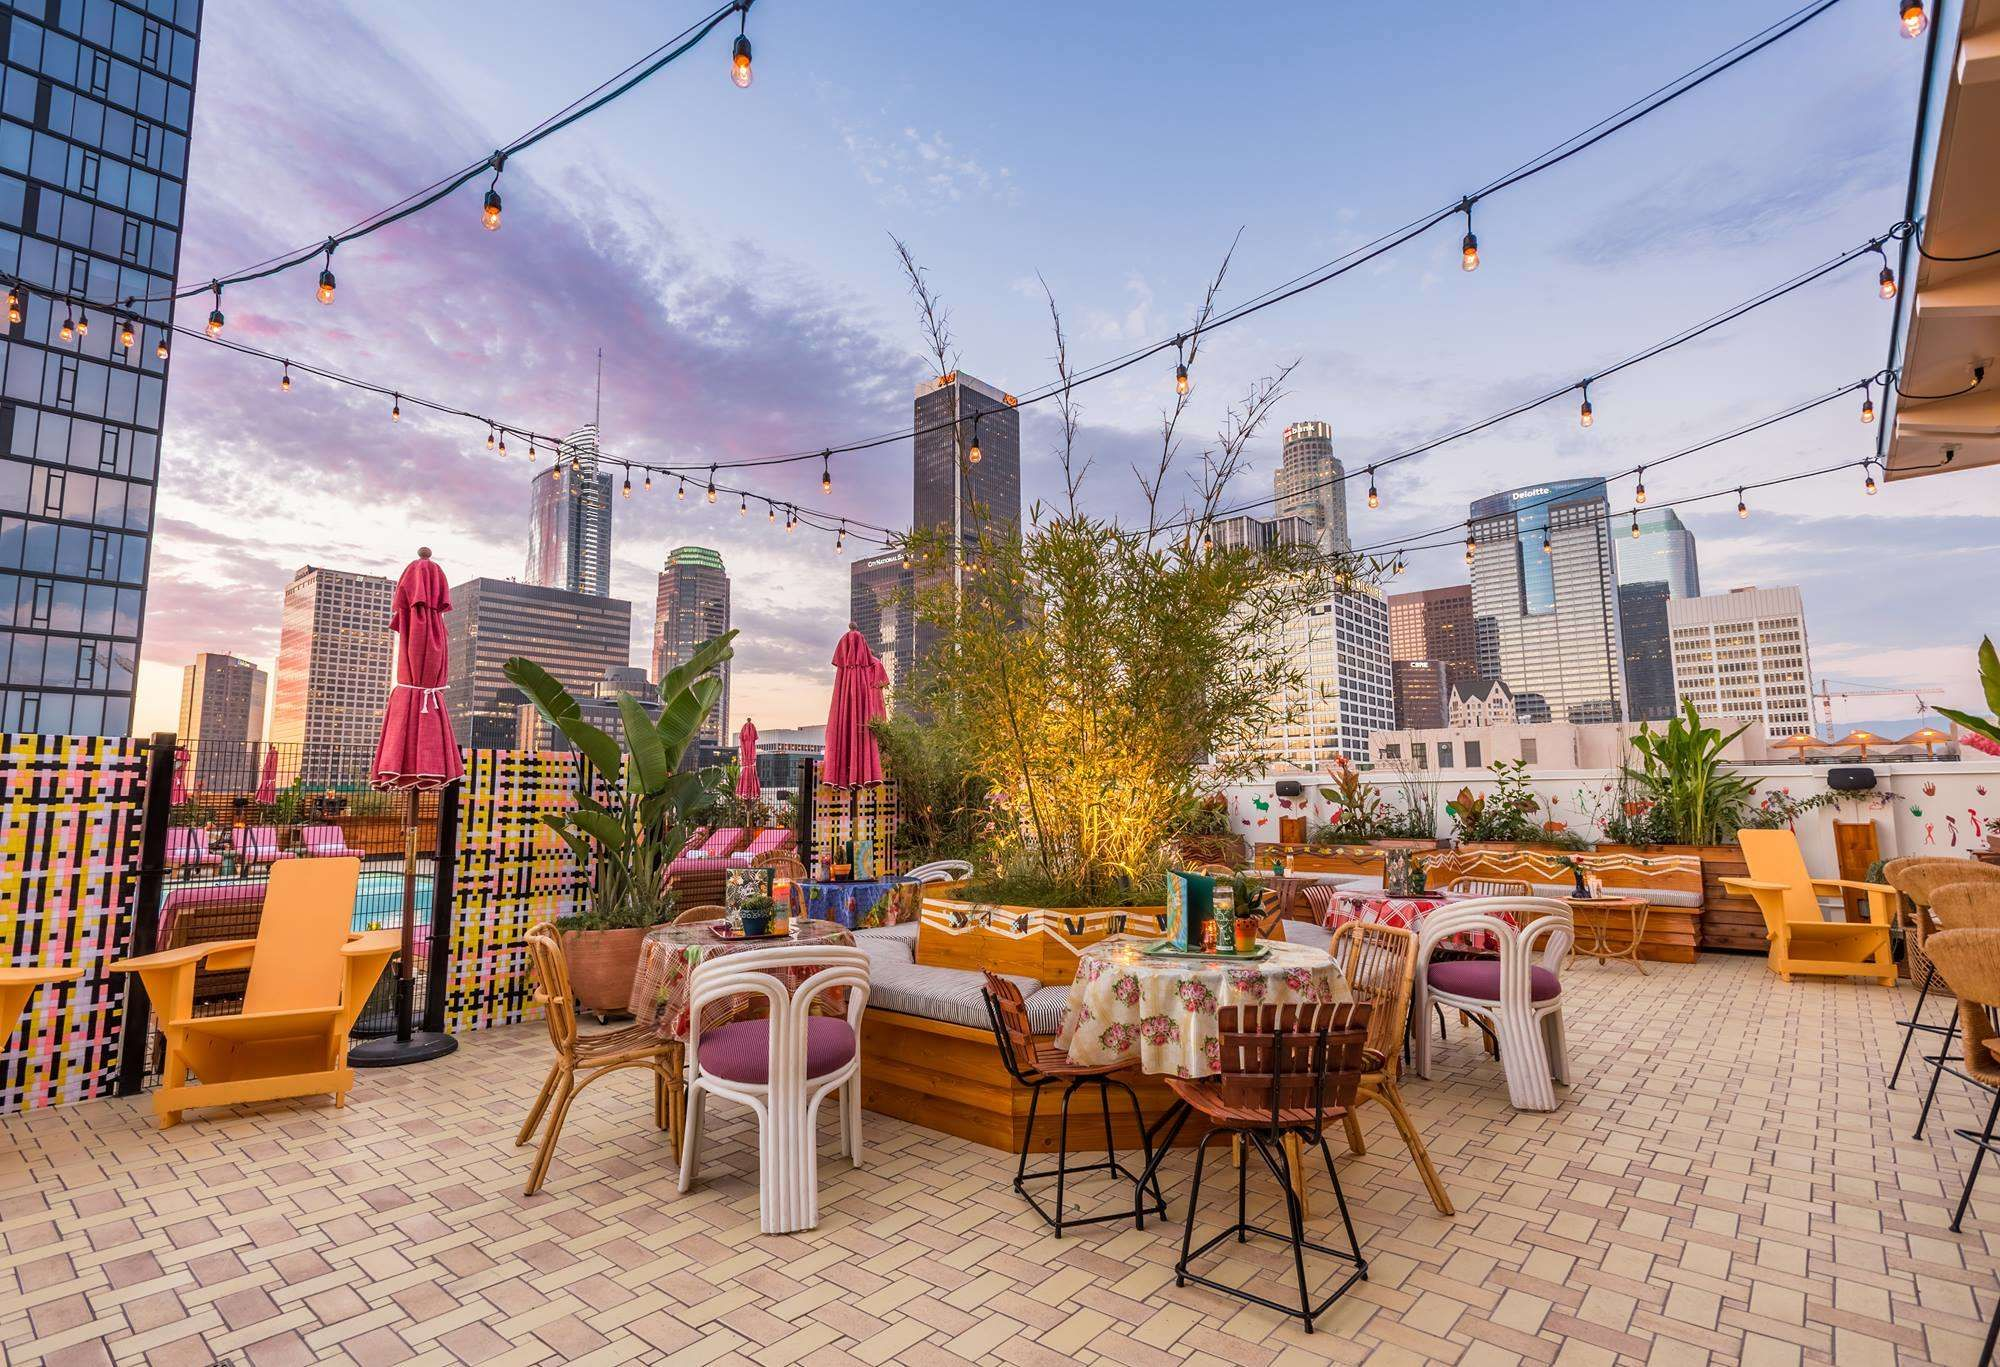 The Best Rooftop Hangouts In Los Angeles Los Angeles Restaurants Best Rooftop Bars Los Angeles Bars